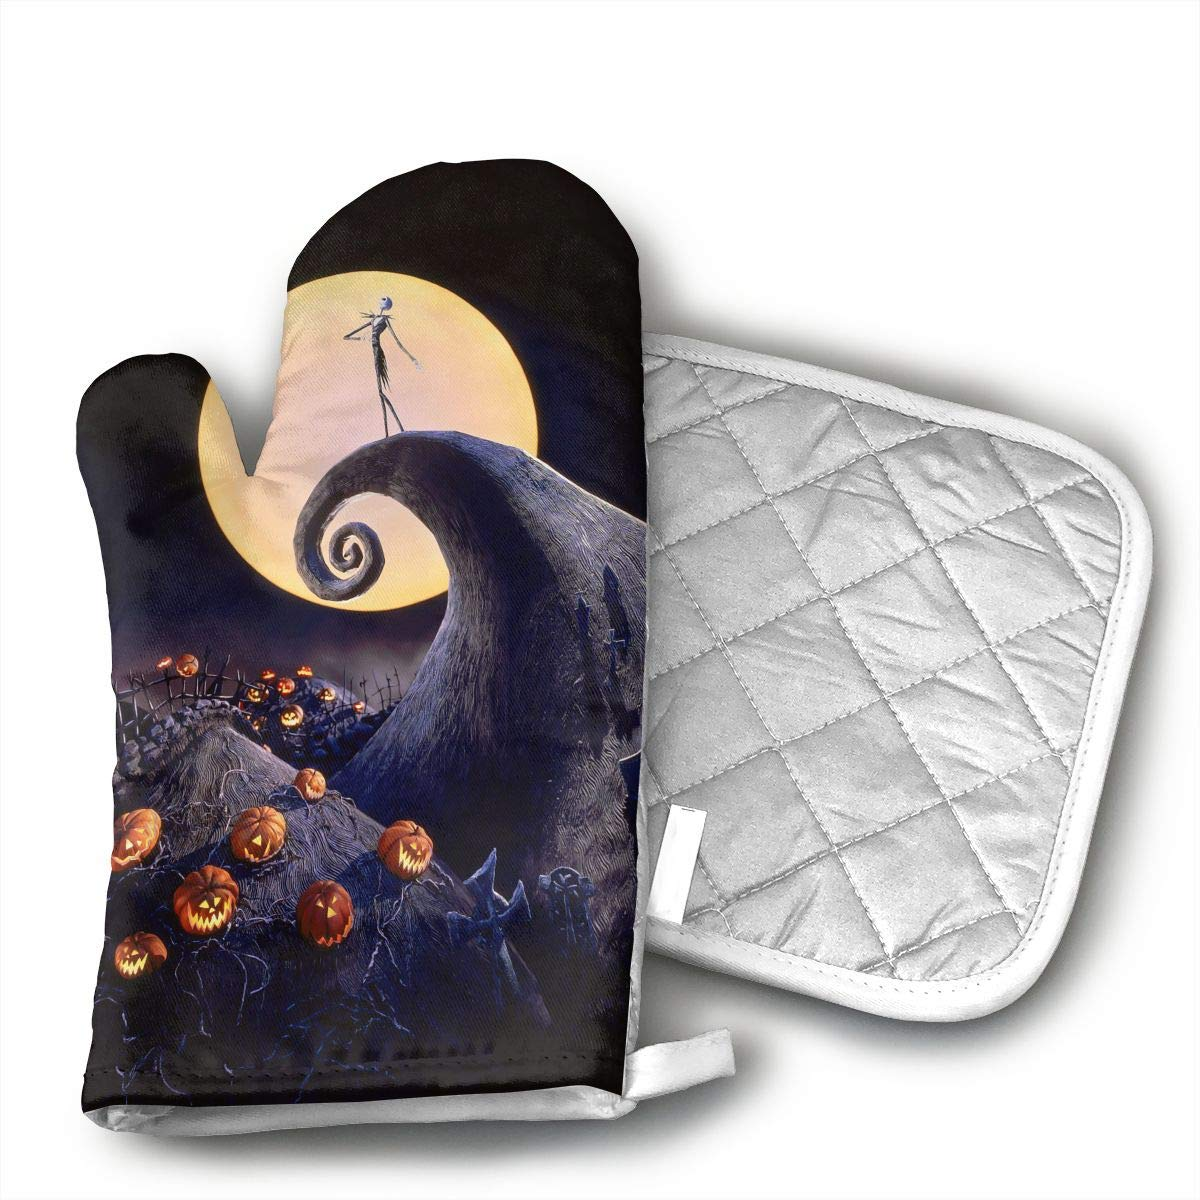 KUGUANG The Nightmare Before Christmas@Oven Mitts, Non-Slip Silicone Oven Mitts, Extra Long Kitchen Mitts, Heat Resistant to 500aF Kitchen Oven Gloves